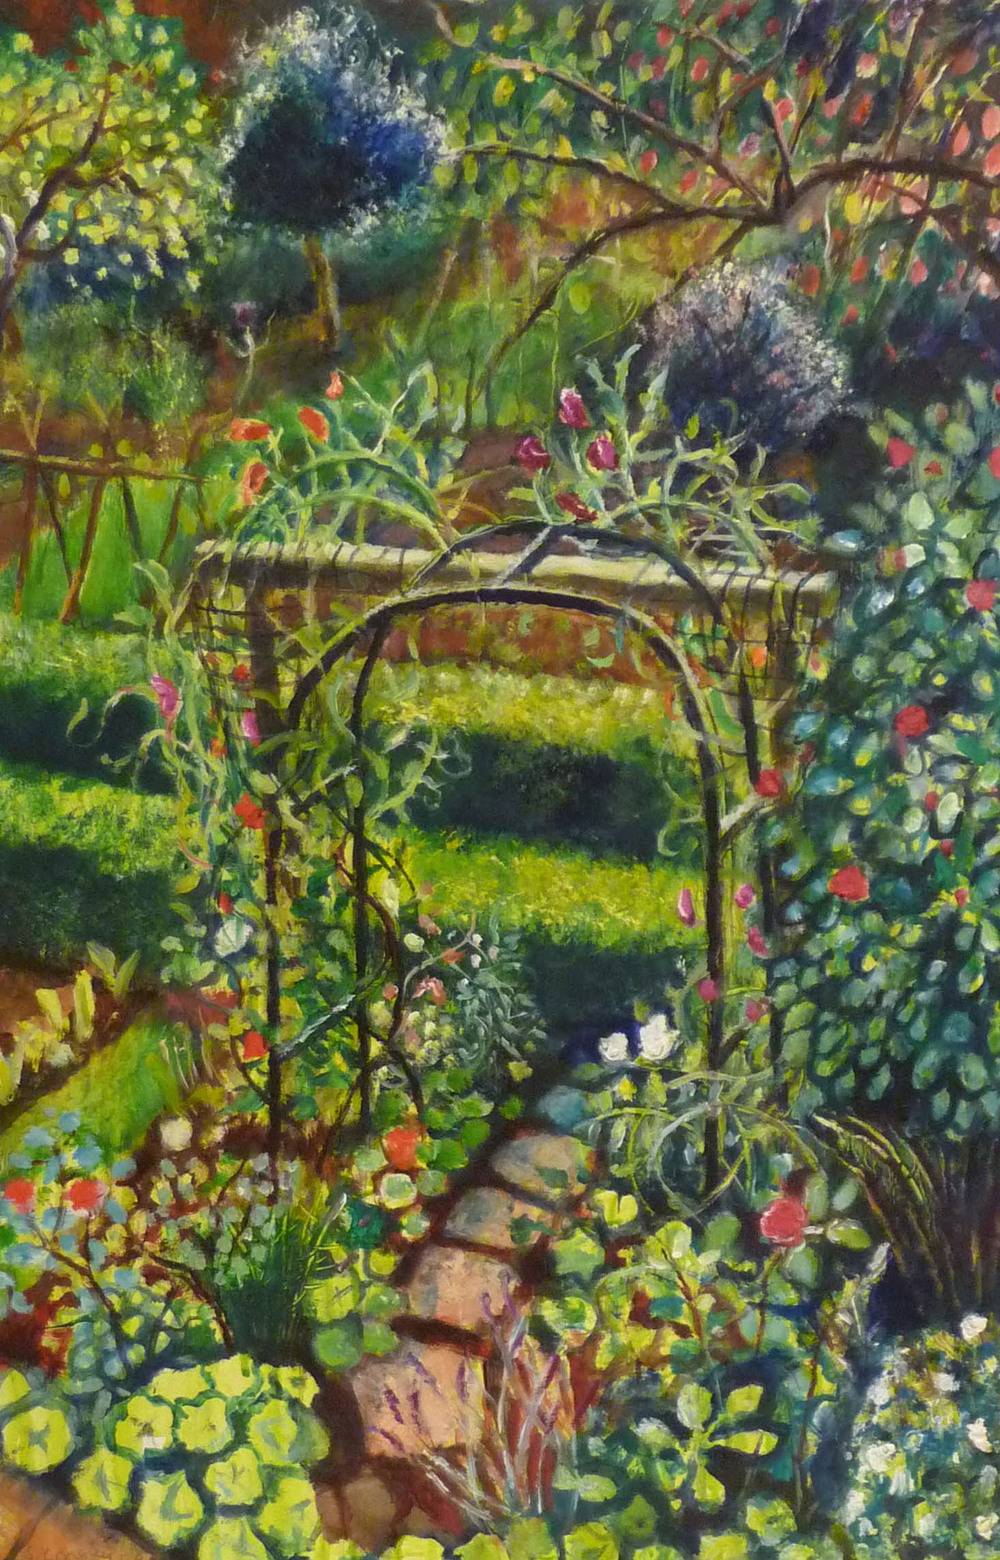 Sarah Longley_-_Sweet Pea Trellis_oil on board_61 x 41cm.jpg